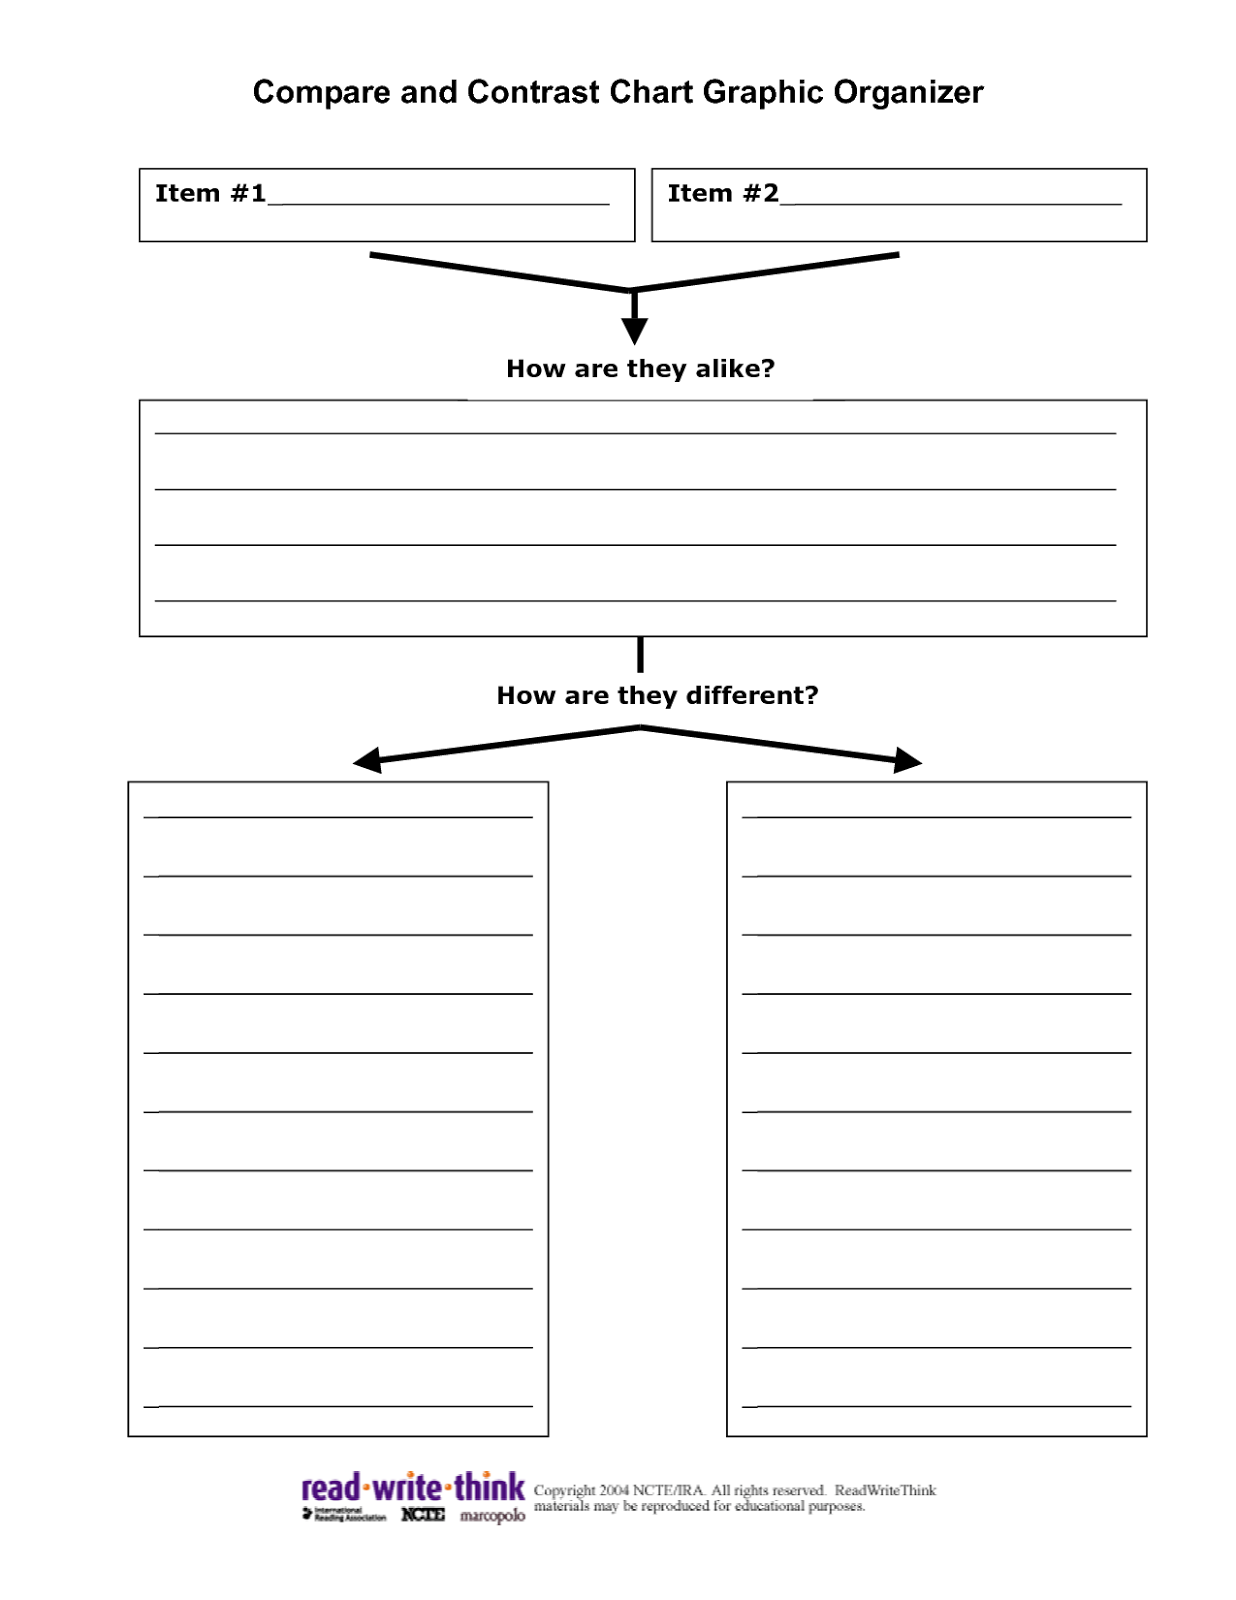 compare and contrast graphic organizer template graphic organizer for essay template